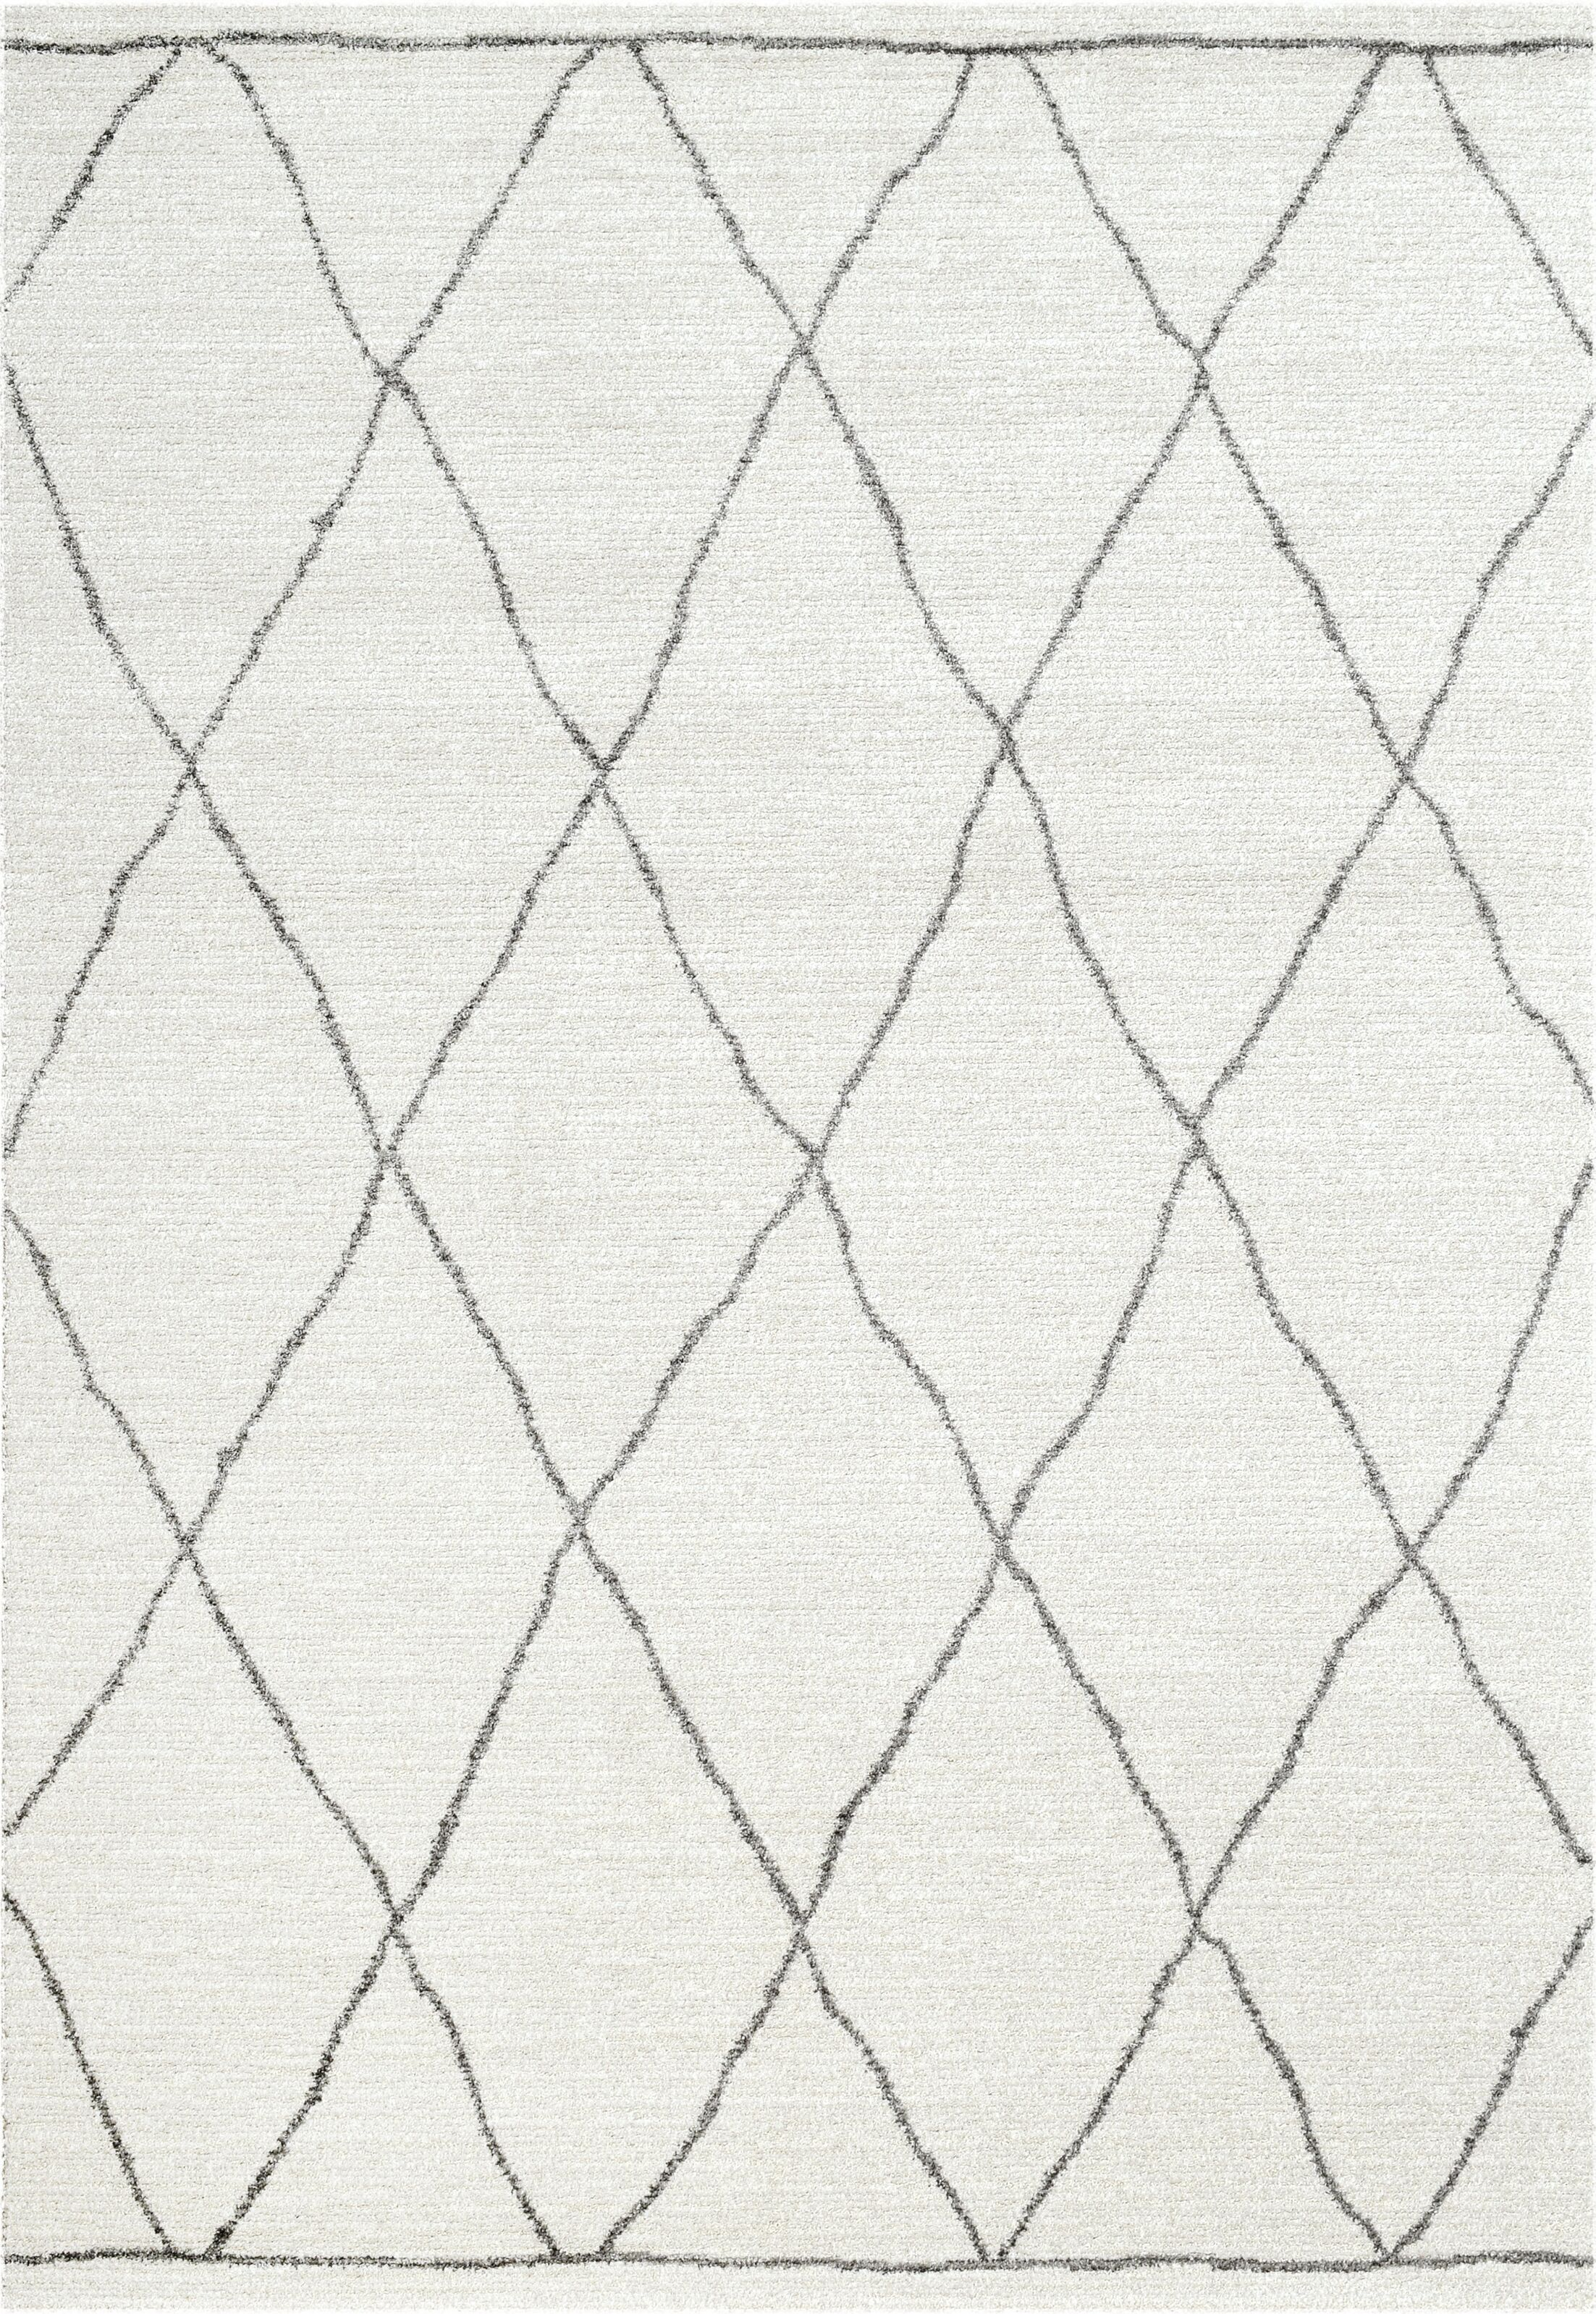 Pisano Ivory/Gray Area Rug Rug Size: Rectangle 6'7